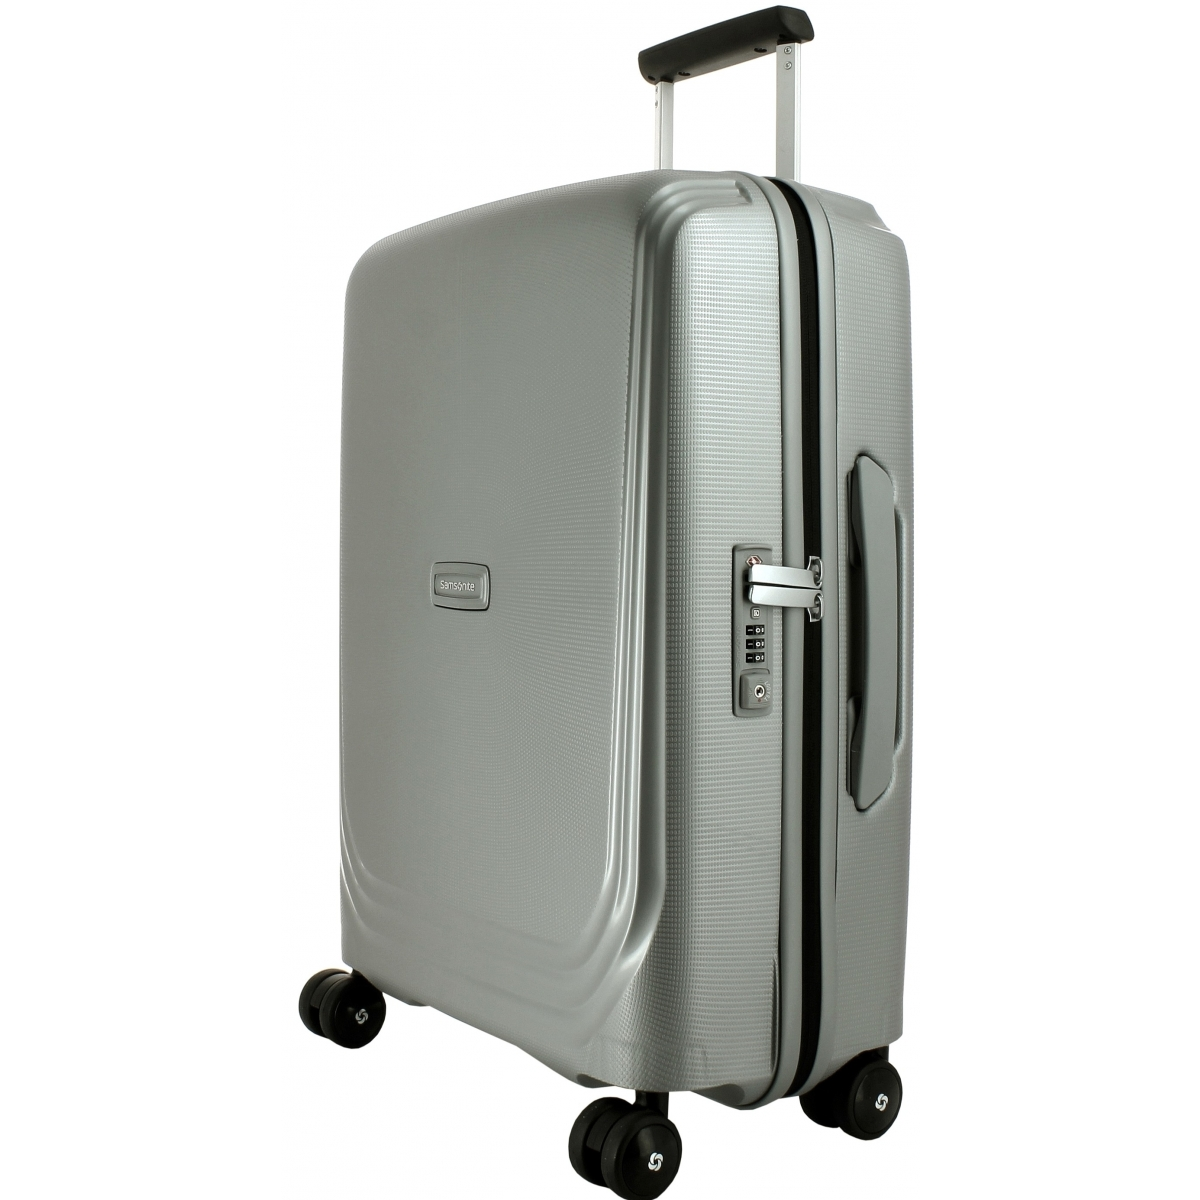 valise cabine optic spinner 55 20 samsonite optic86 couleur principale silver metallic. Black Bedroom Furniture Sets. Home Design Ideas